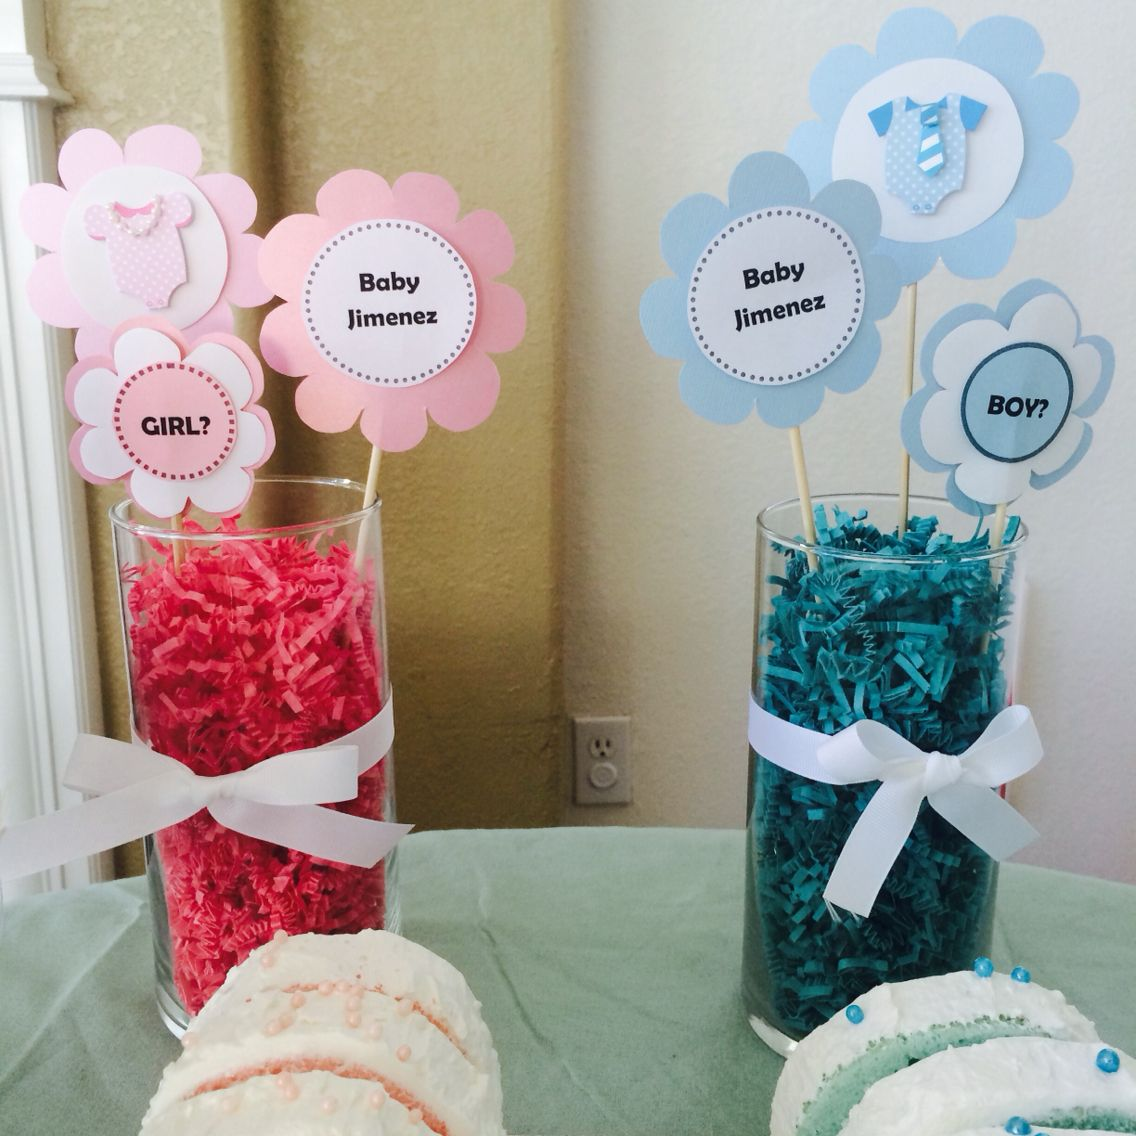 Diy Centerpieces For Gender Reveal Party Gender Reveal